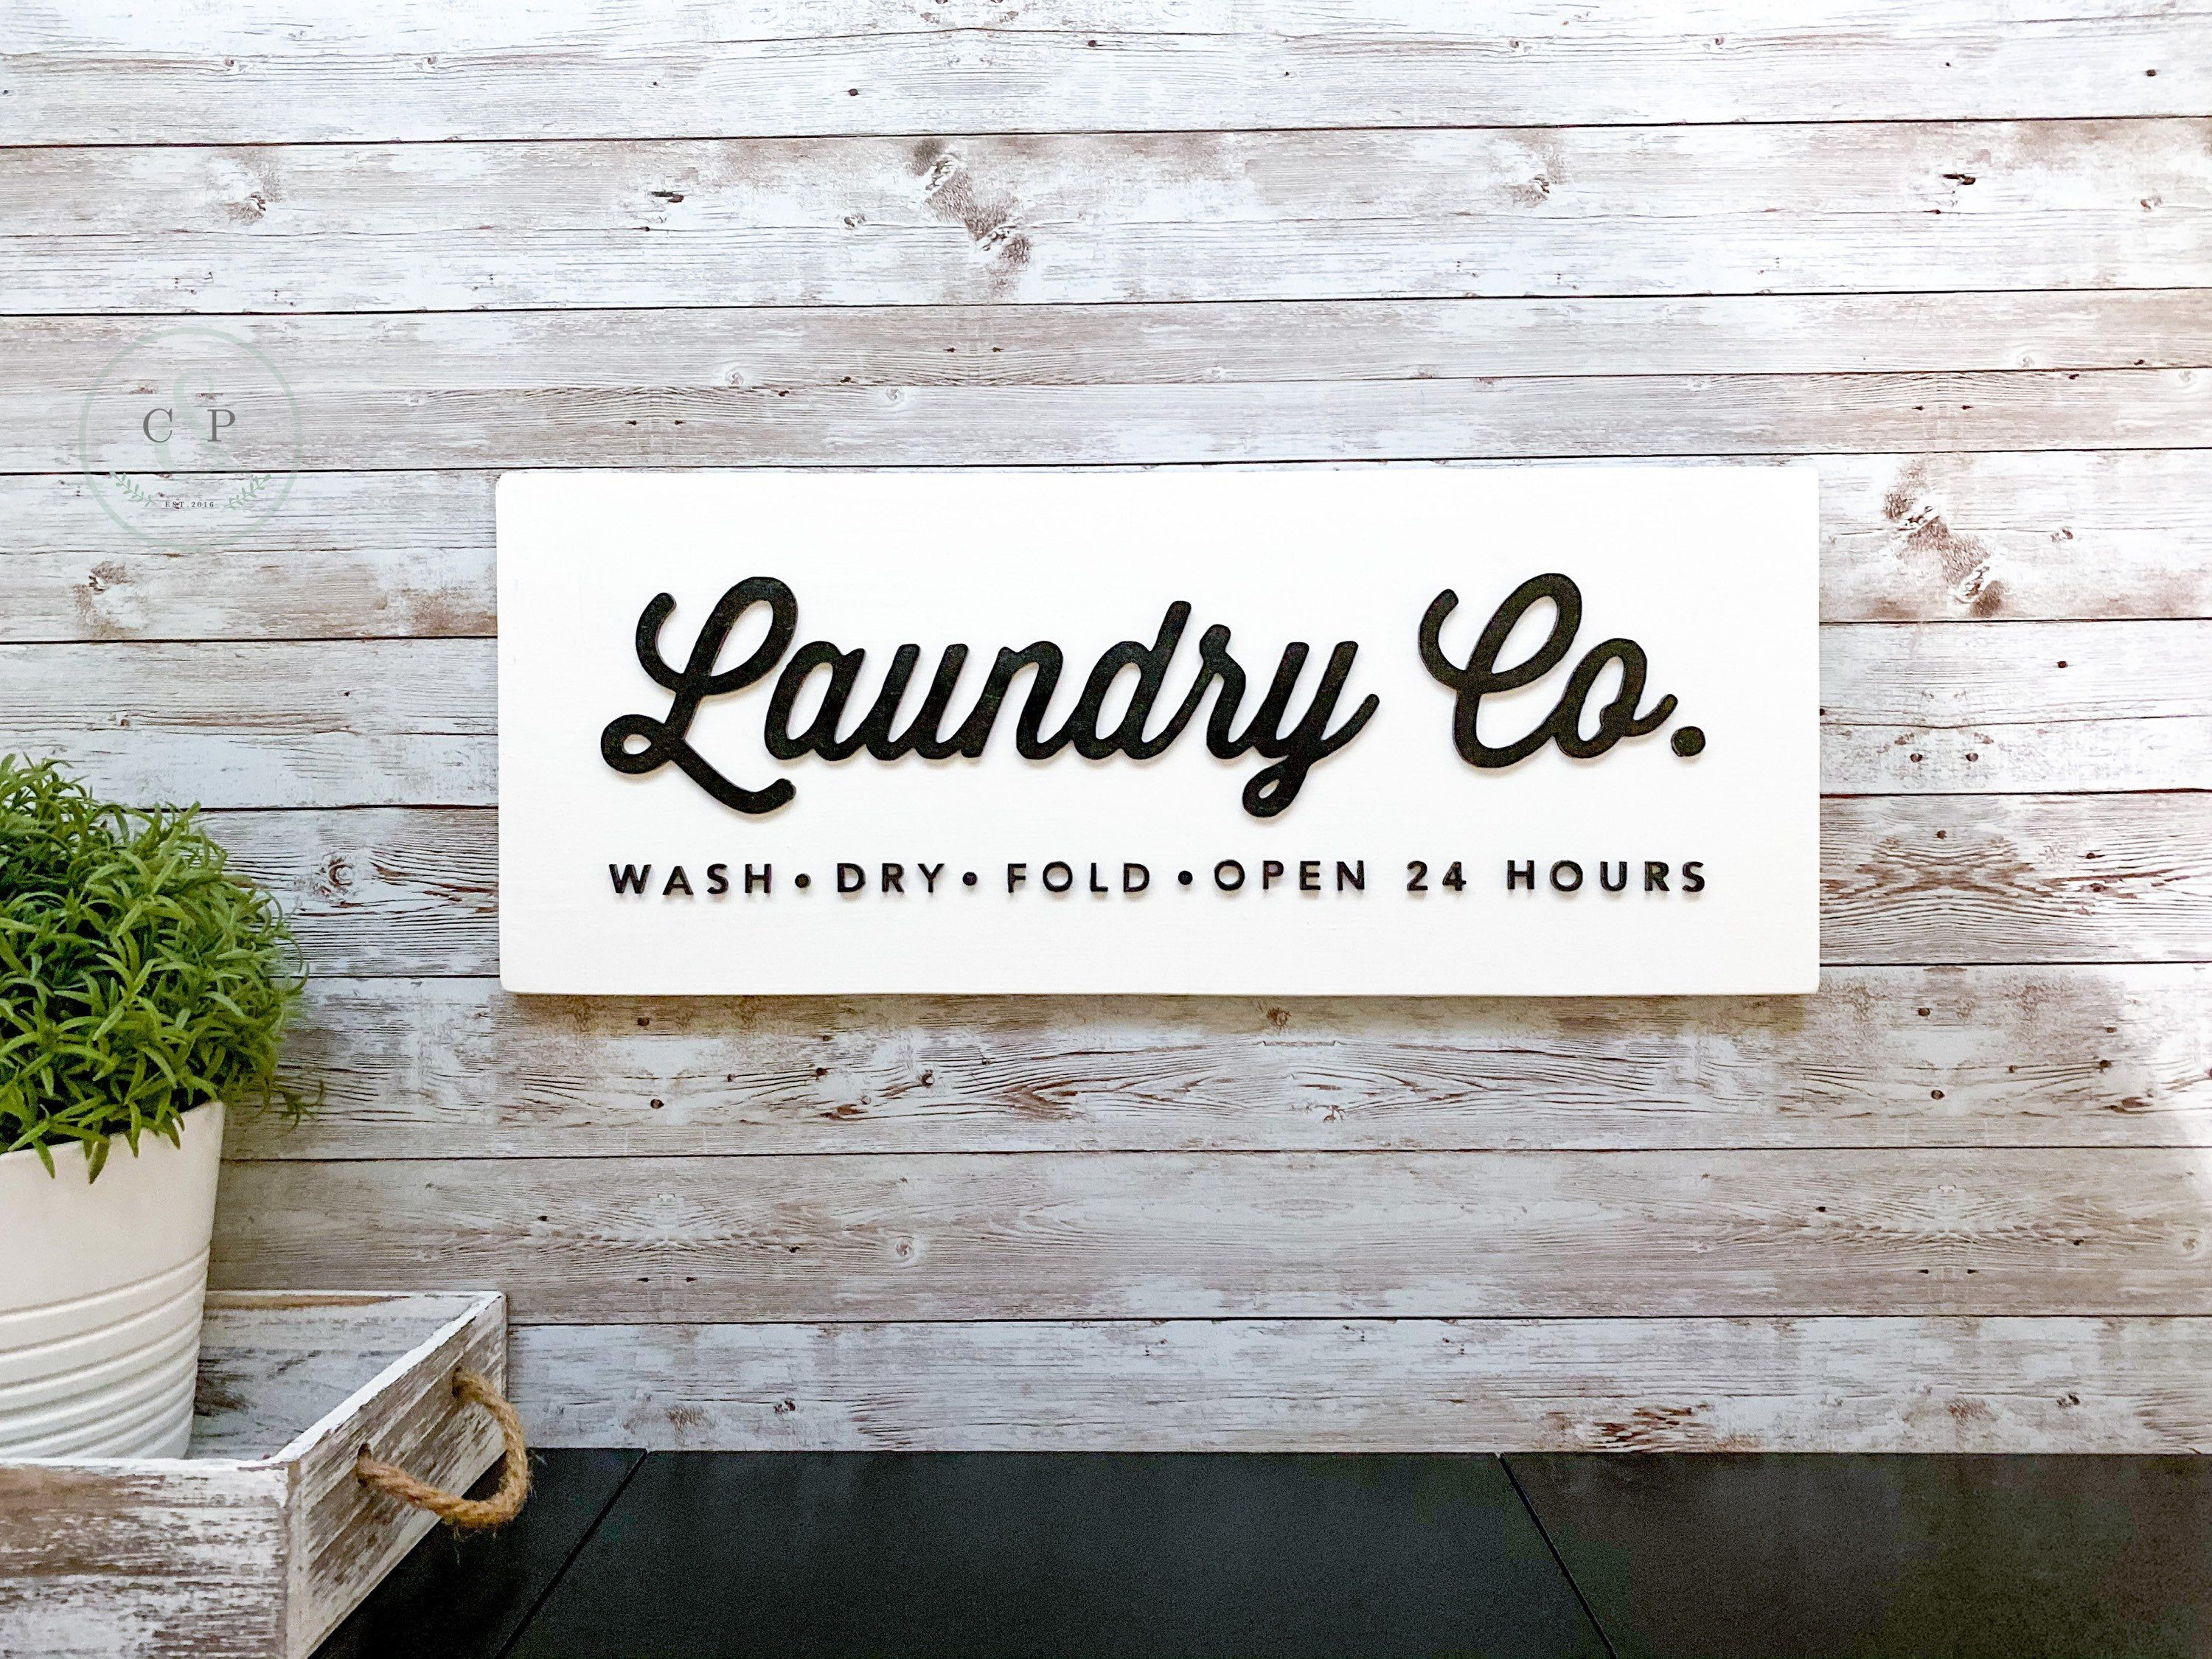 Pin On Laundry Co